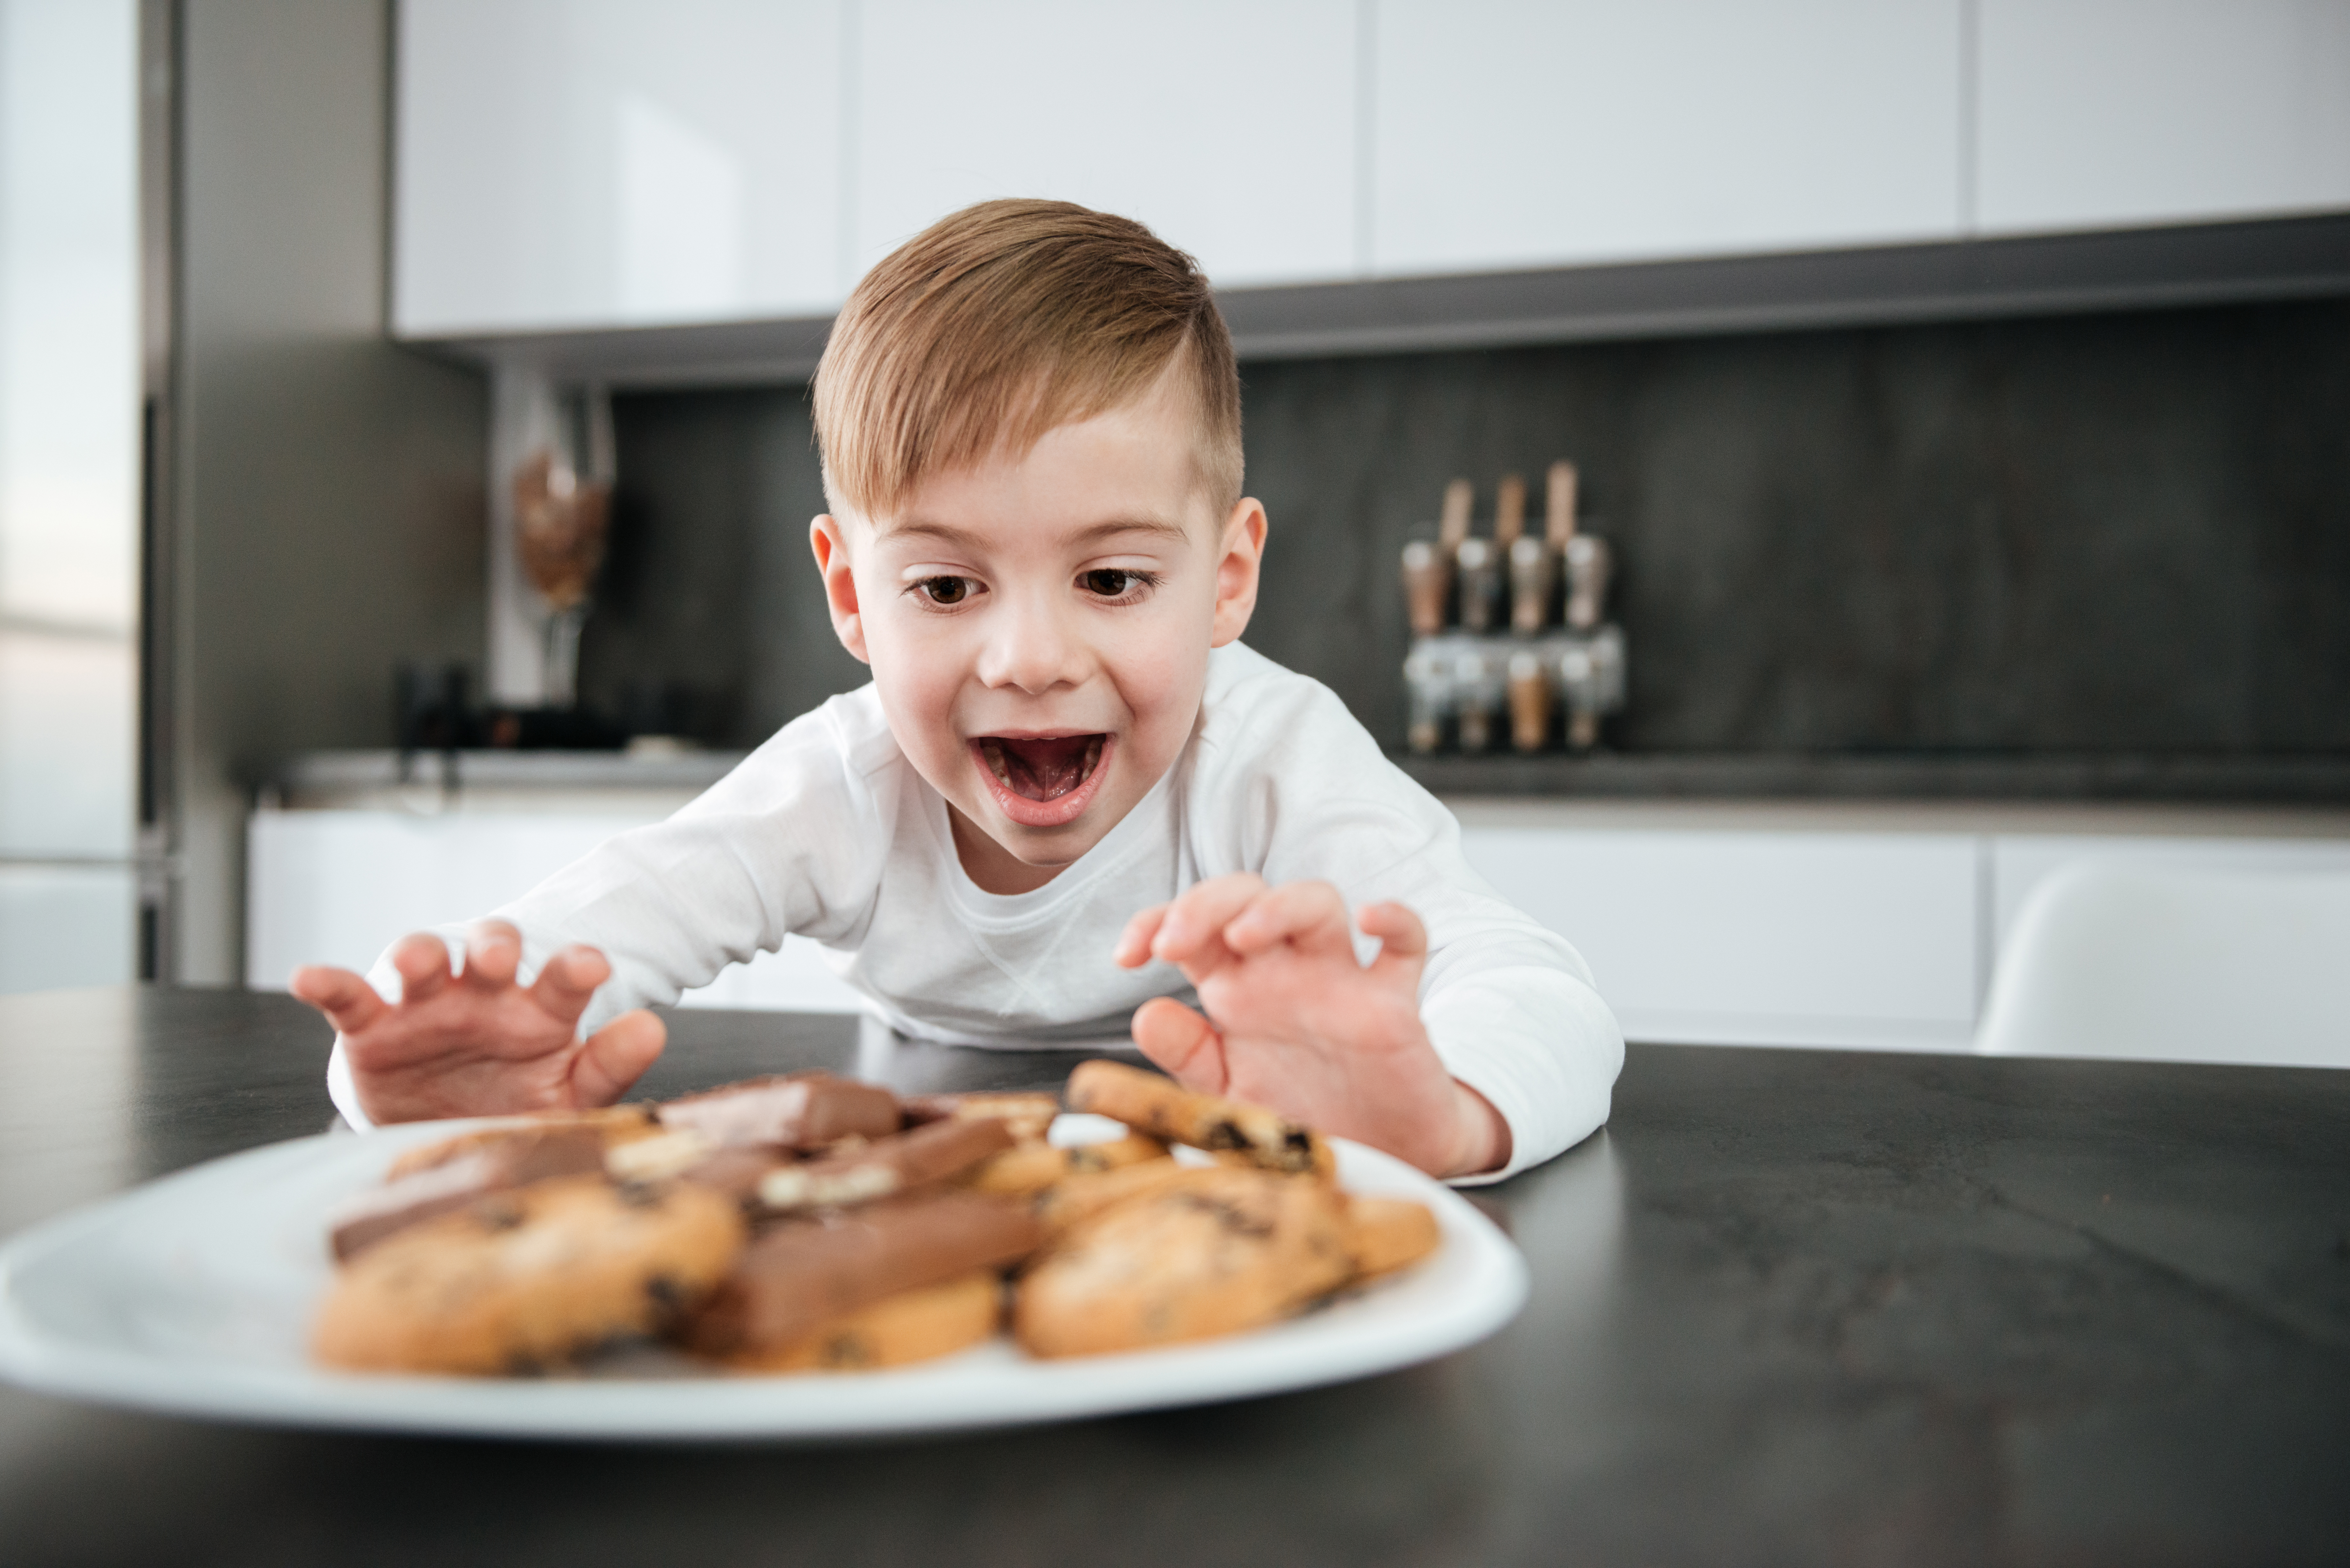 little boy excited reaching for the cookie plate